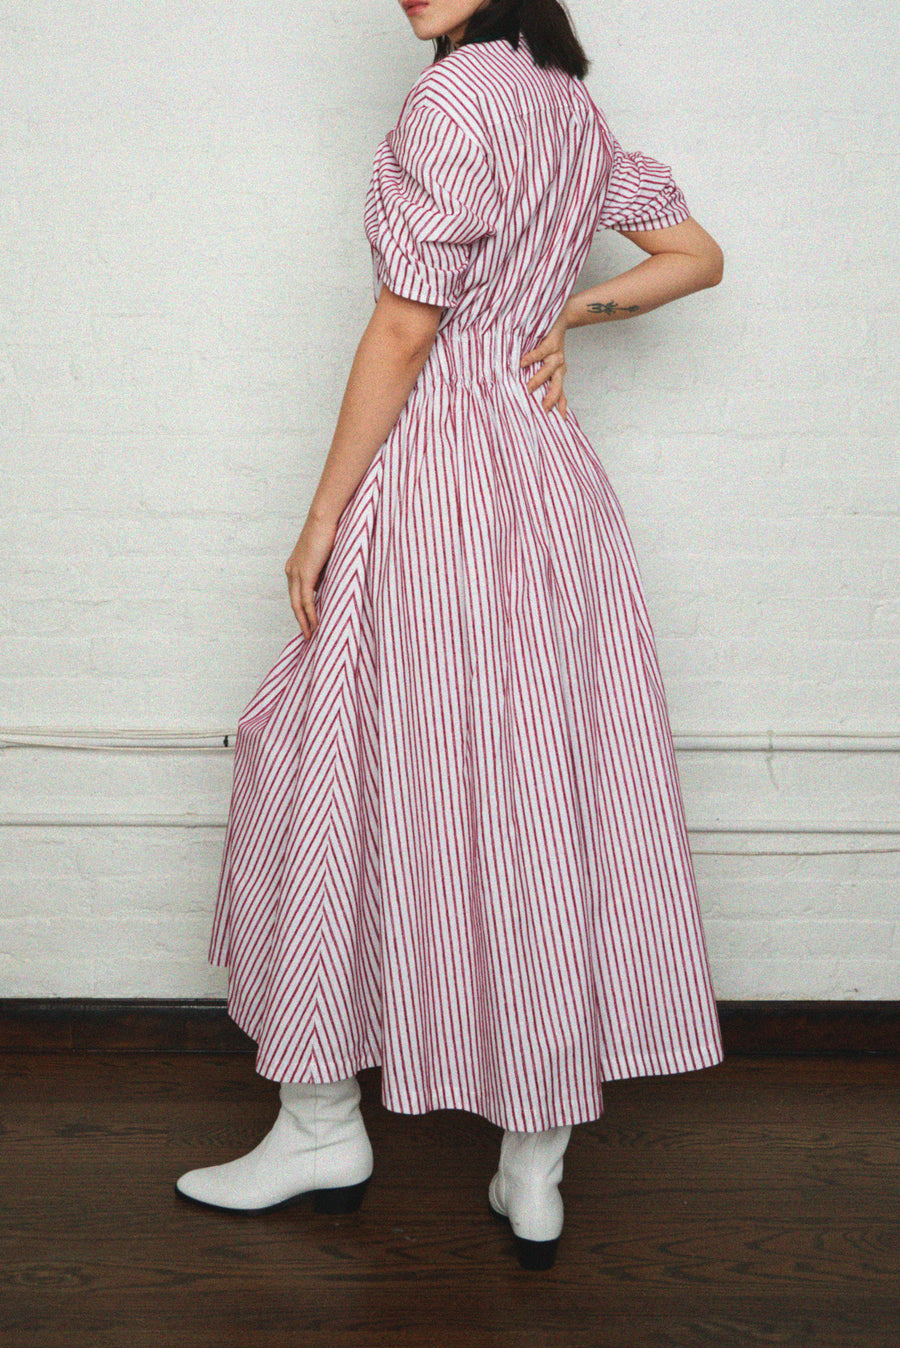 Shirred Waist Tea Dress